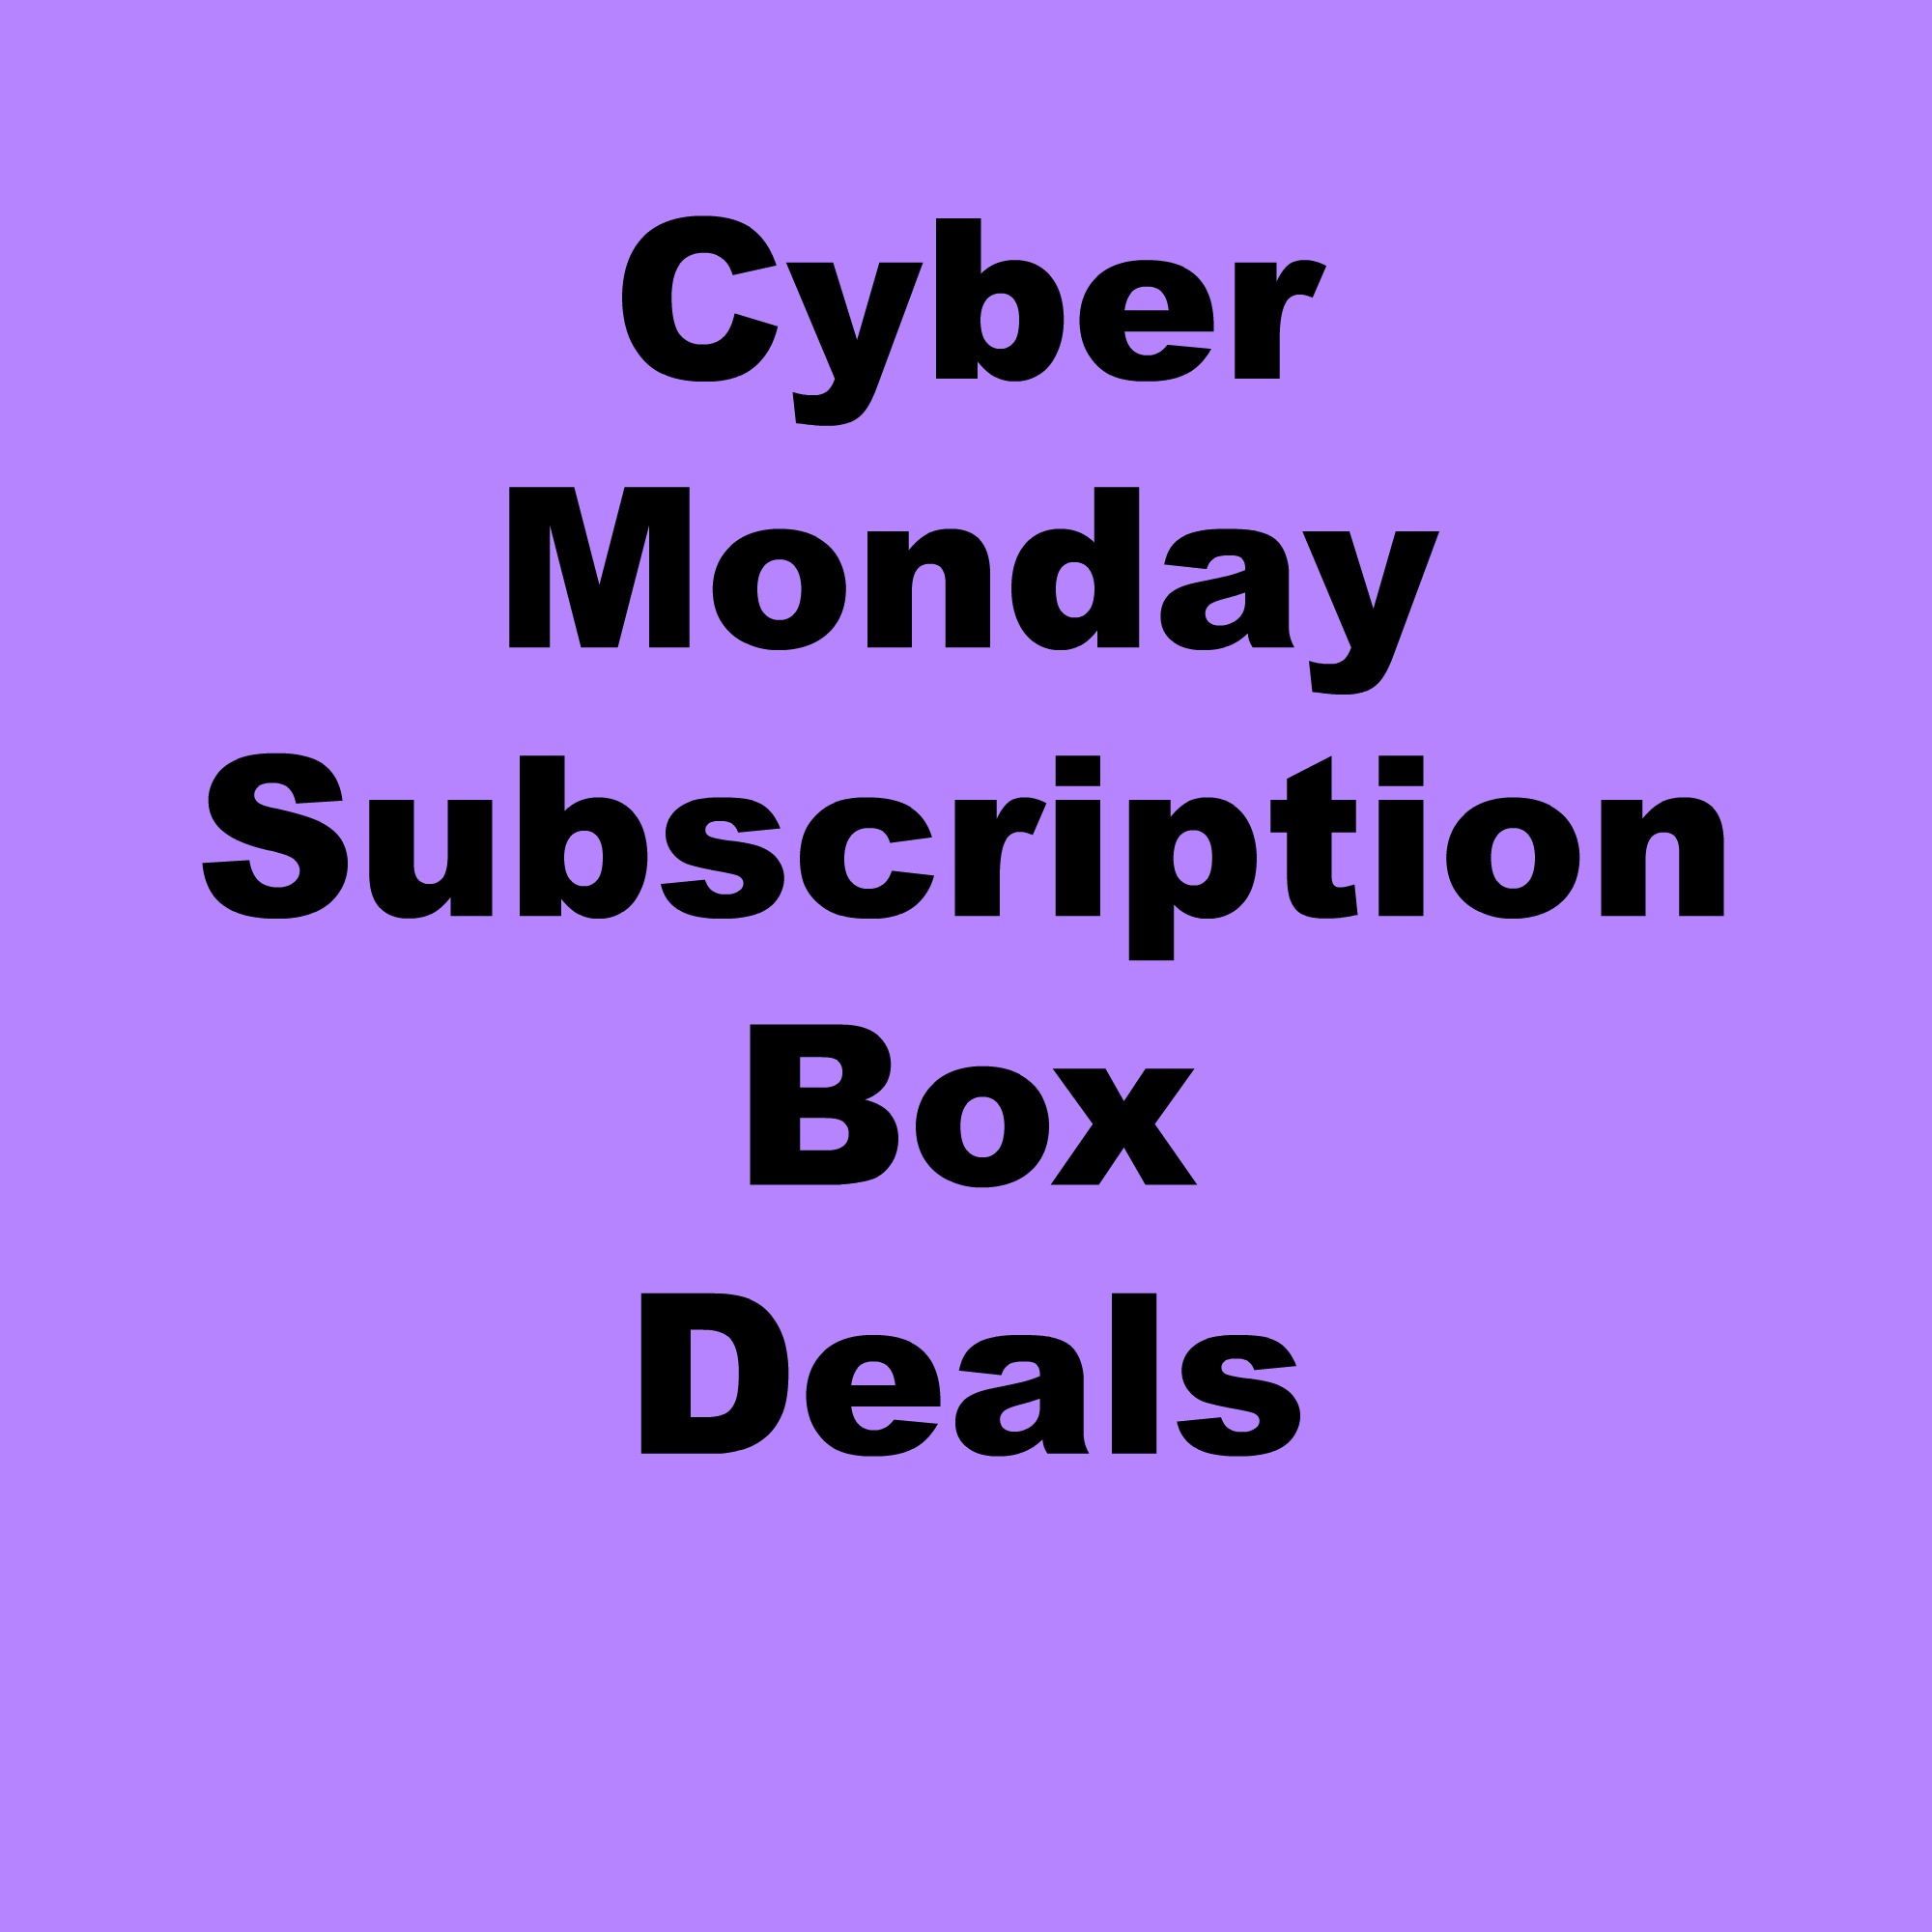 Cyber Monday Subscription Box Coupons + Deals 2014